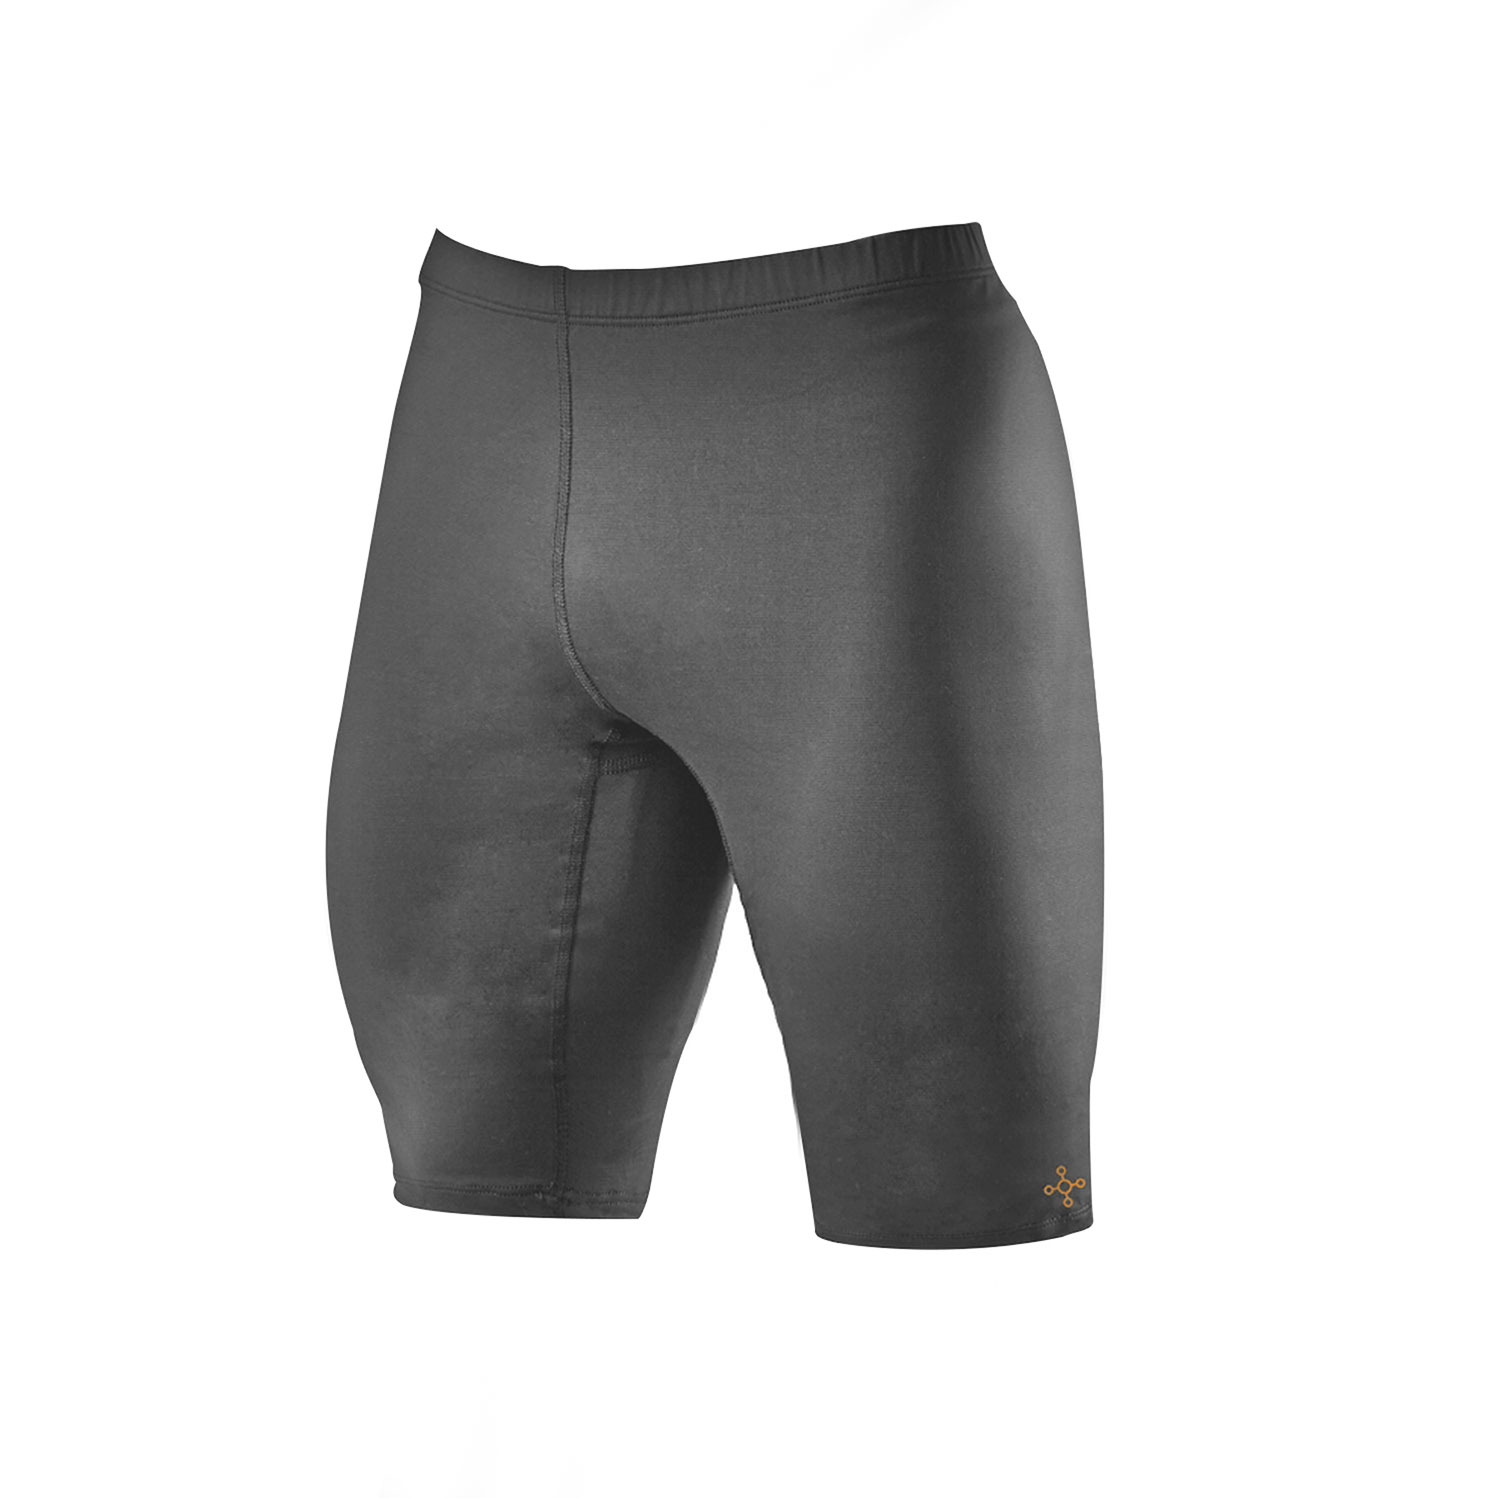 Tommie Copper Men's Compression Running Shorts